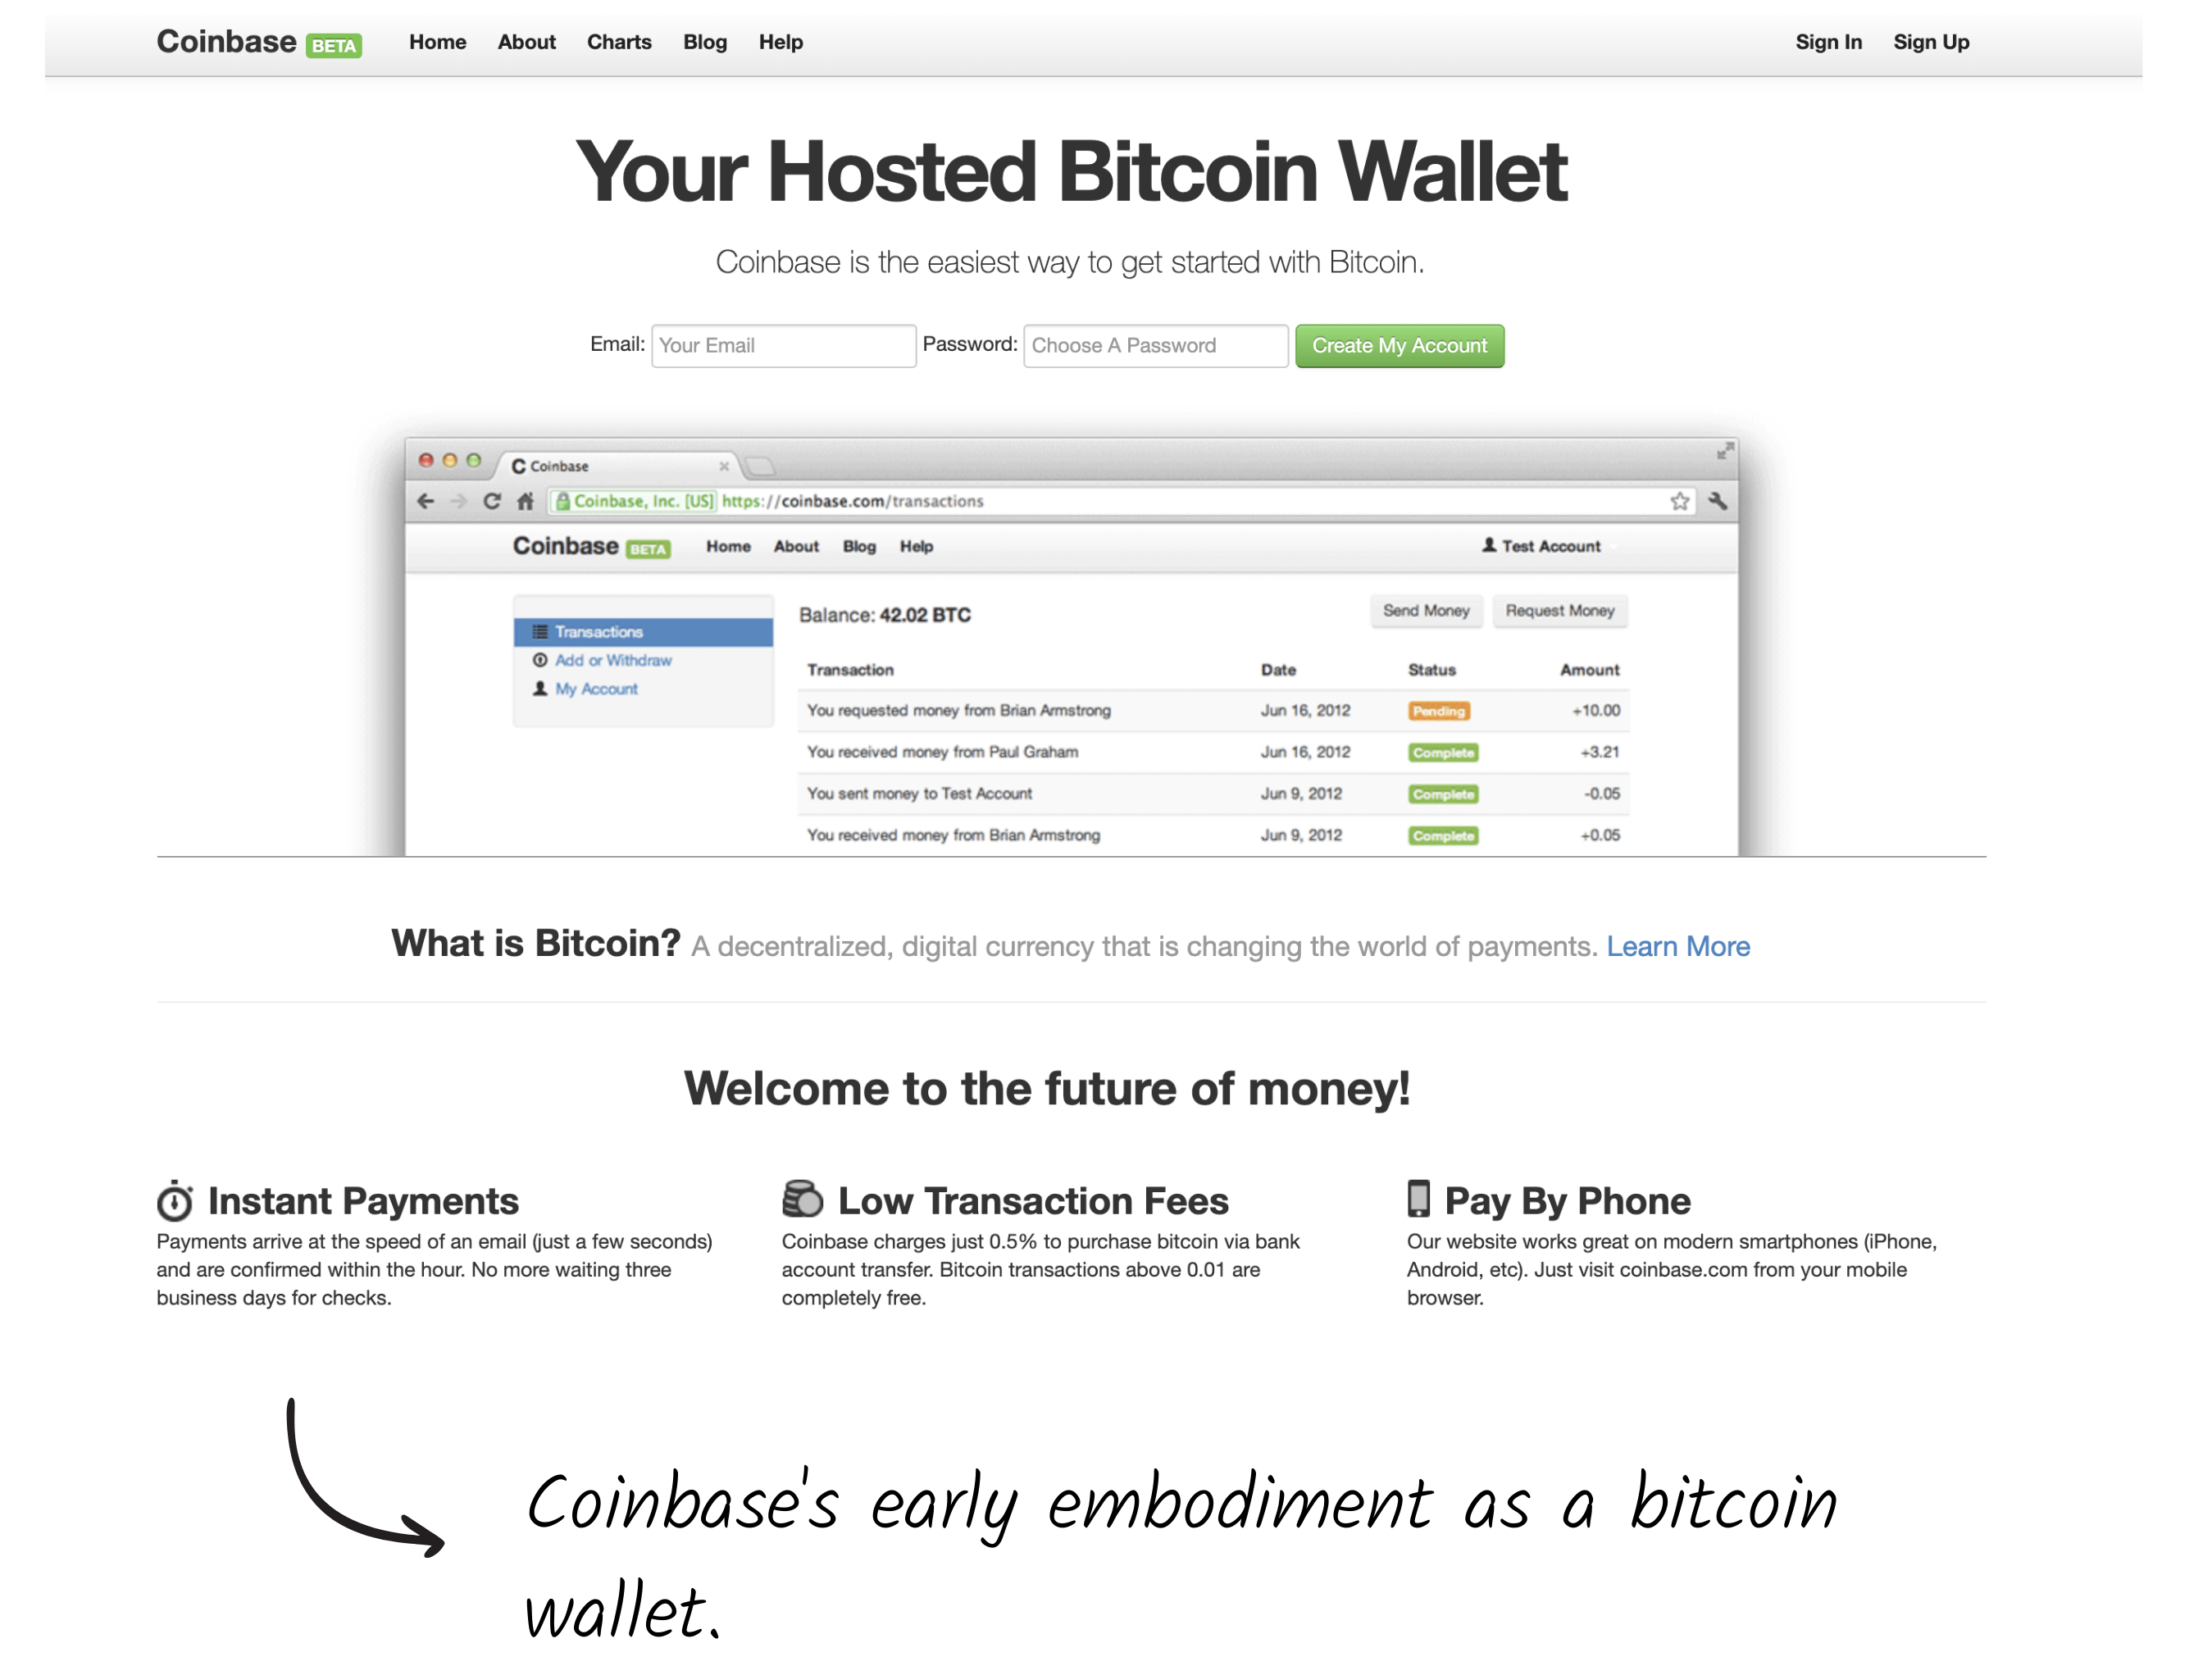 Coinbase.com in 2012